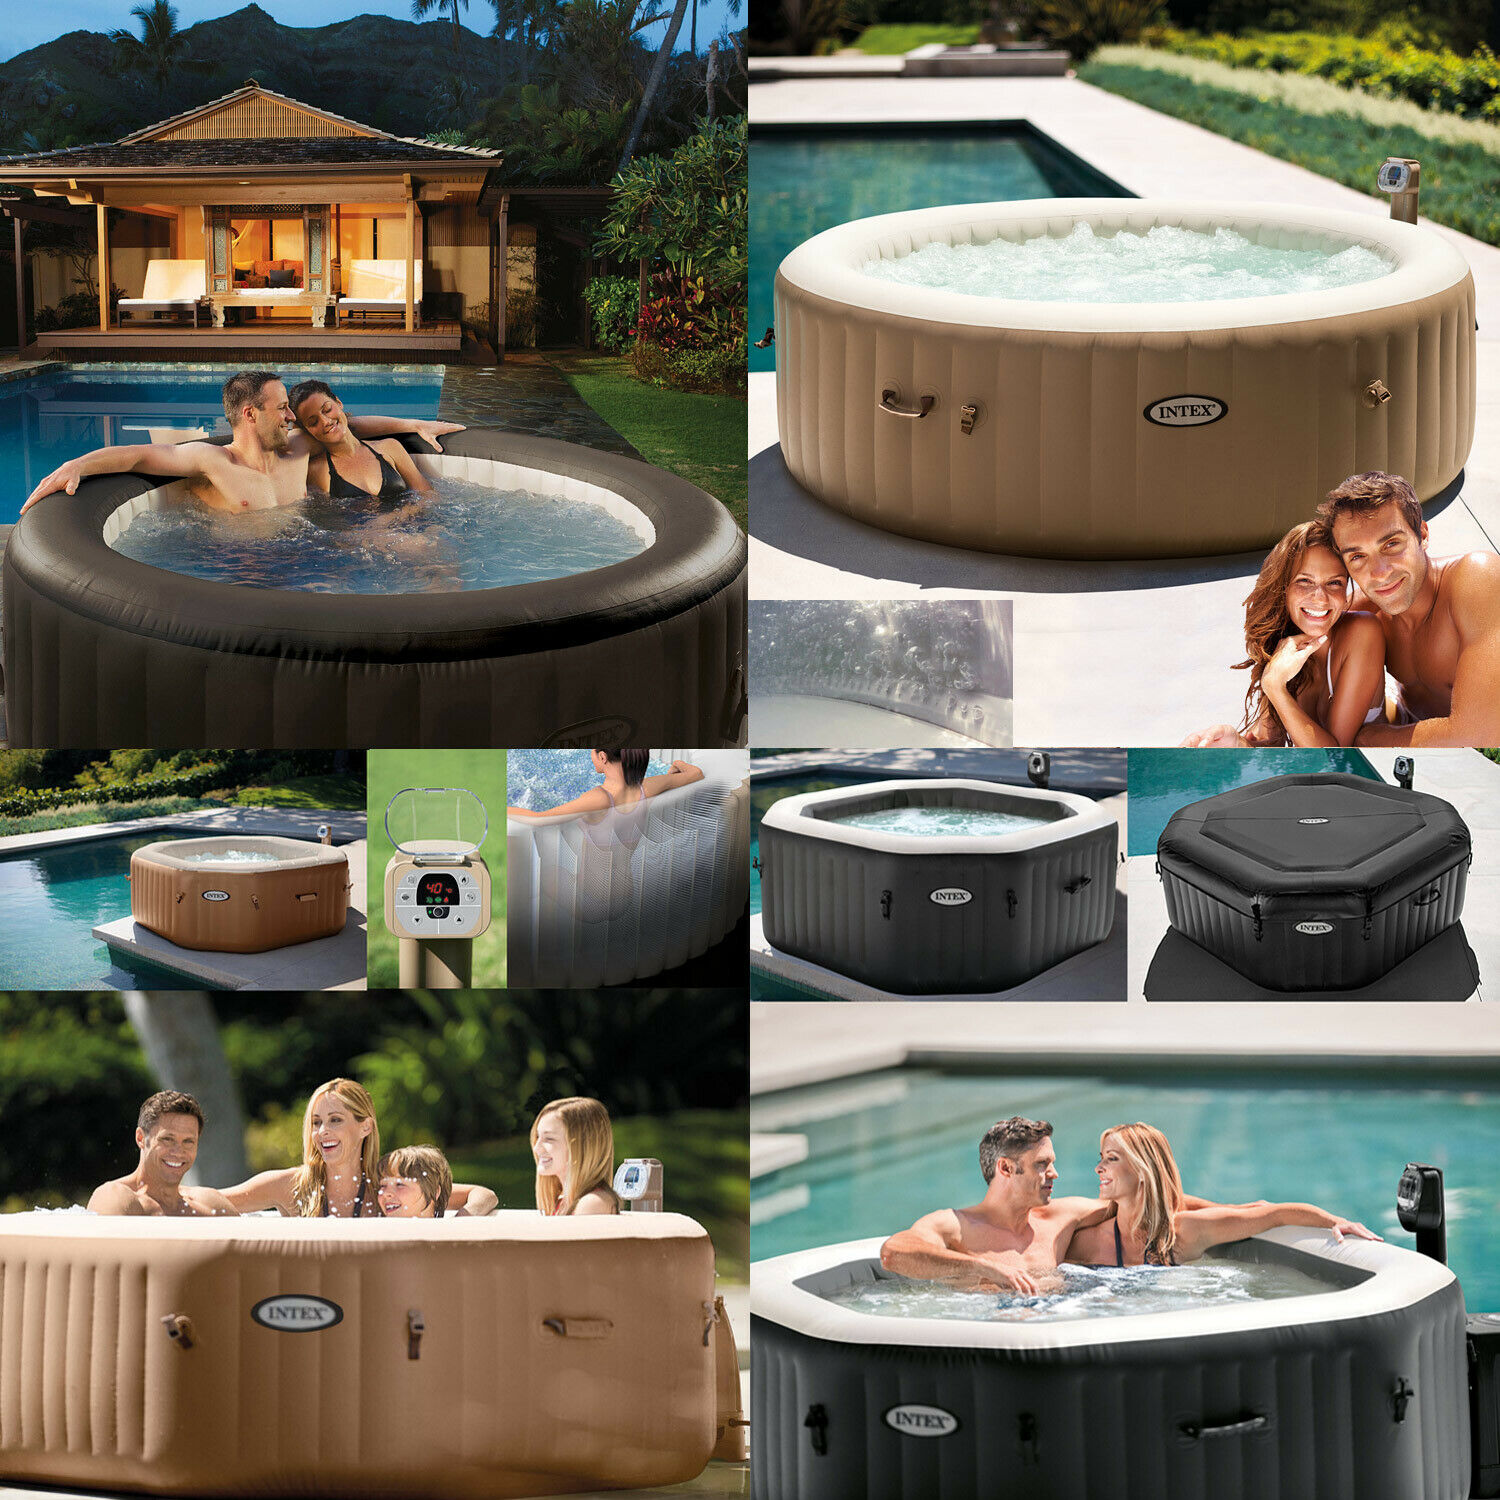 intex deluxe whirlpool spa pool badewanne aufblasbar whirlwanne outdoor heizung eur 428 88. Black Bedroom Furniture Sets. Home Design Ideas